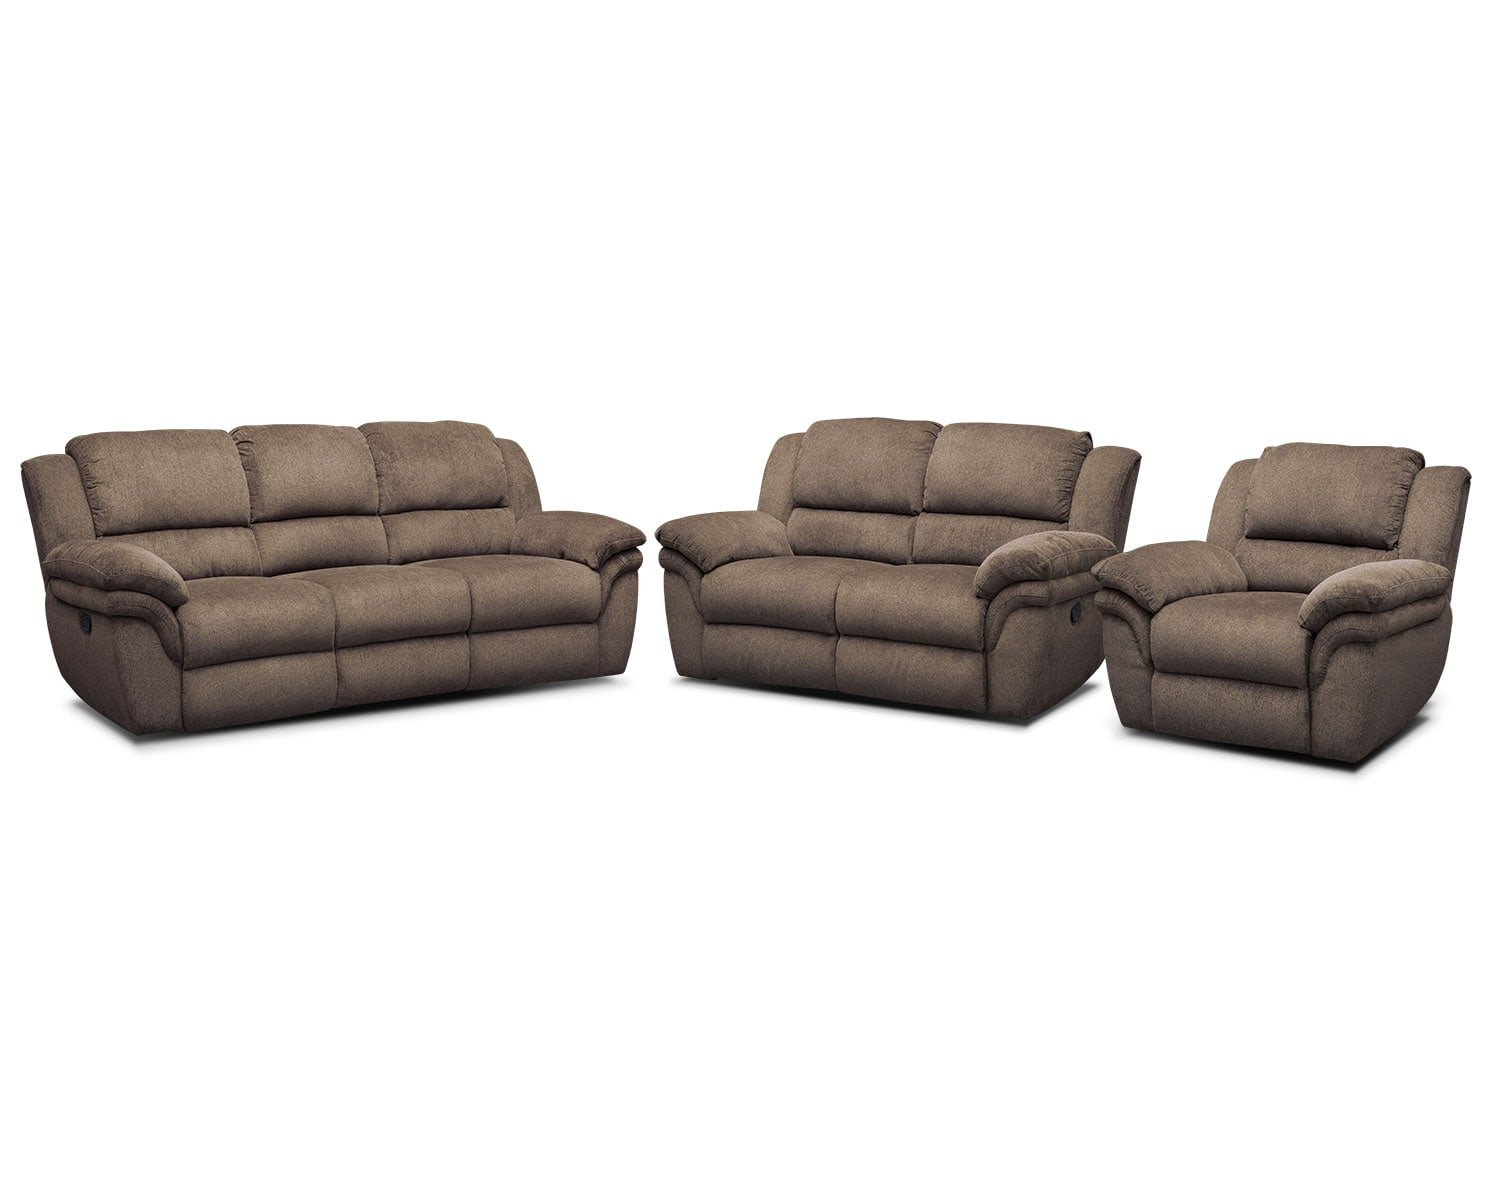 The Aldo Manual Reclining Living Room Collection